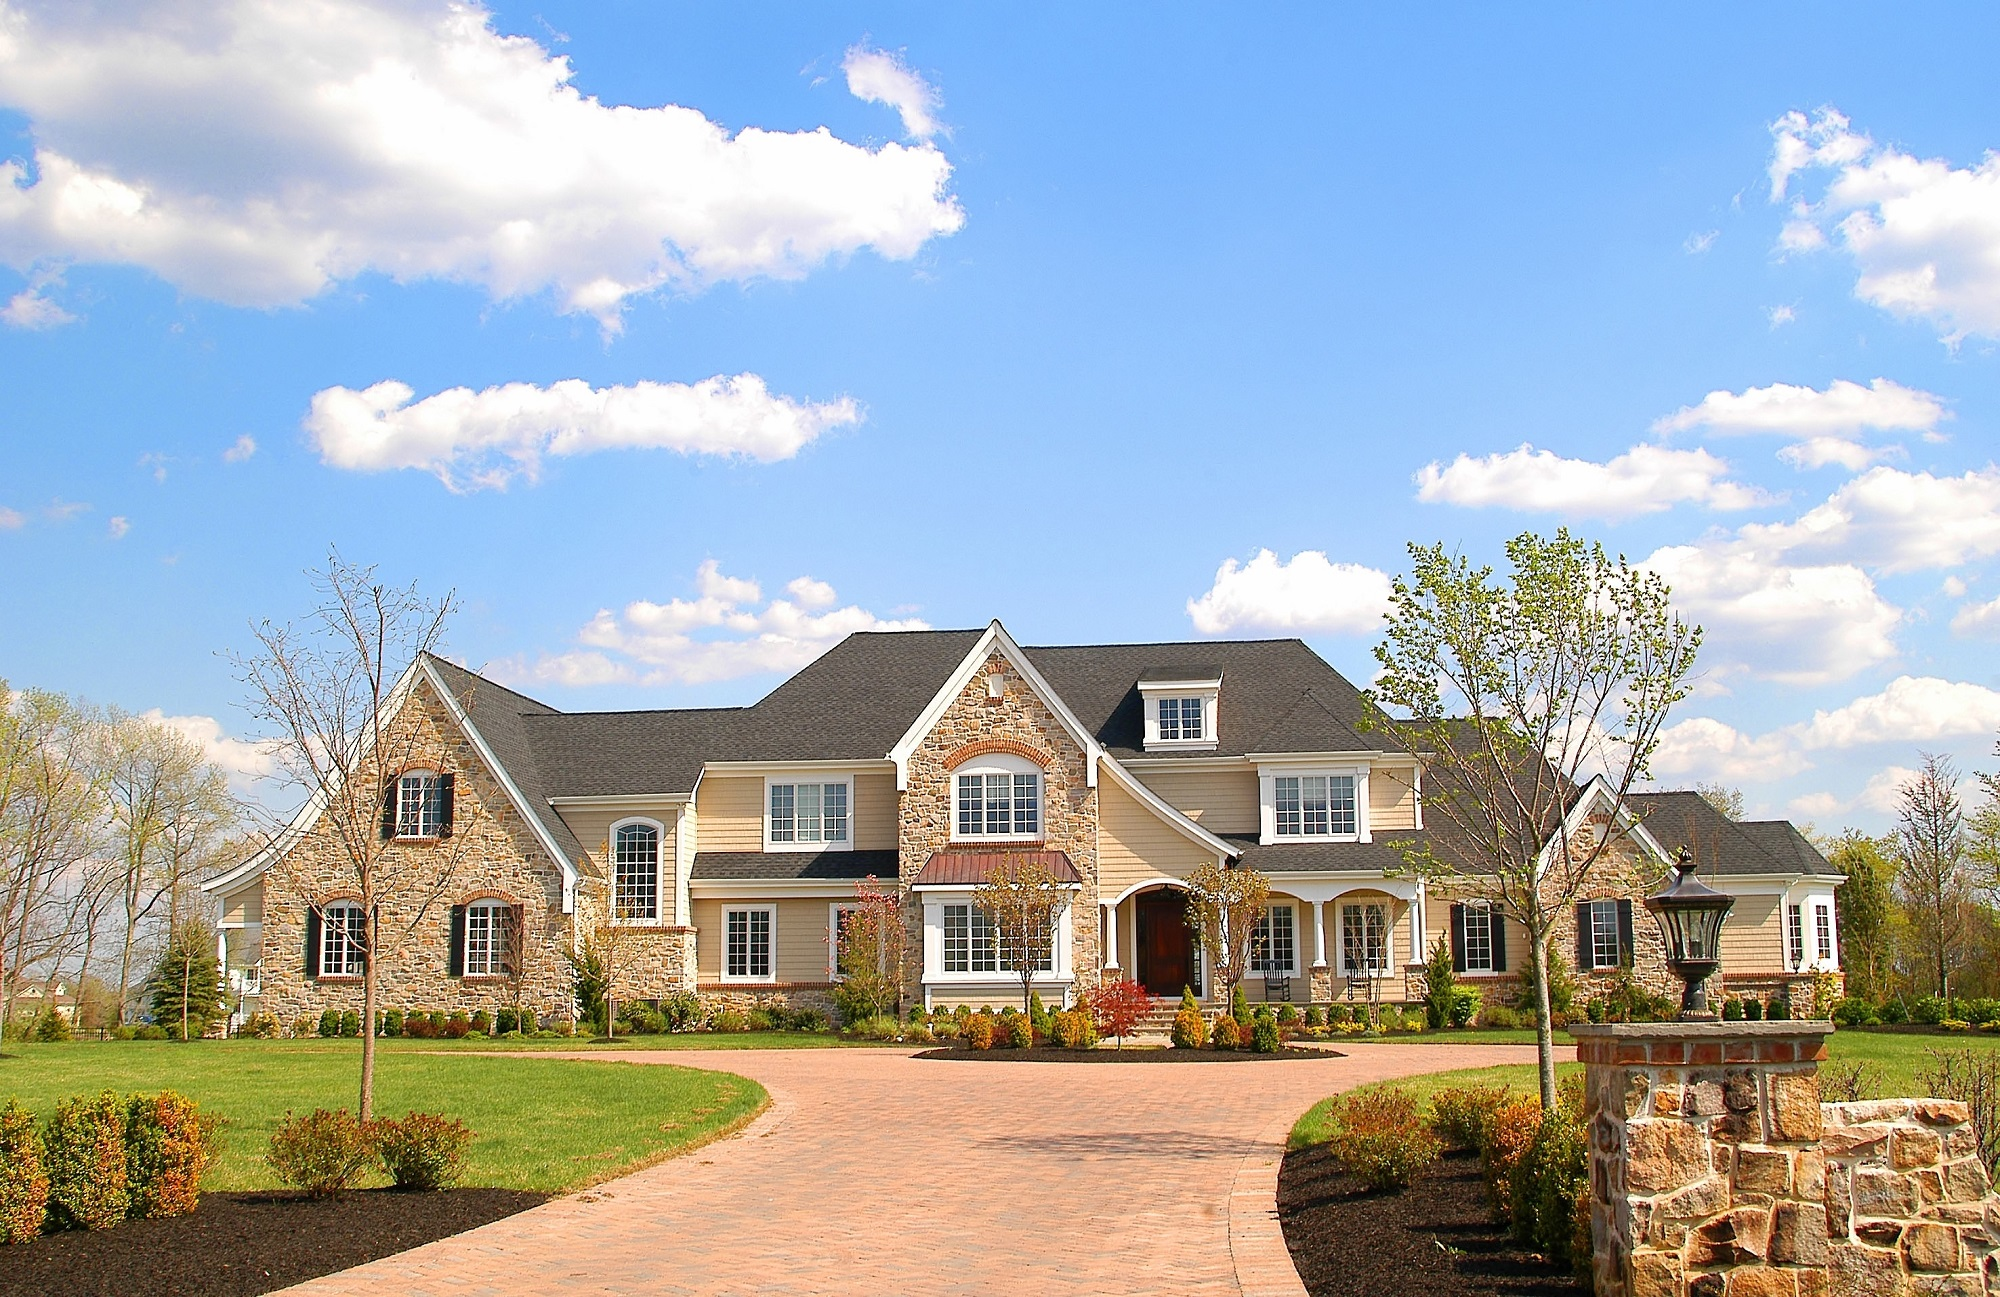 Ho ho kus dream homes luxury real estate in bergen county for Luxury dream homes for sale